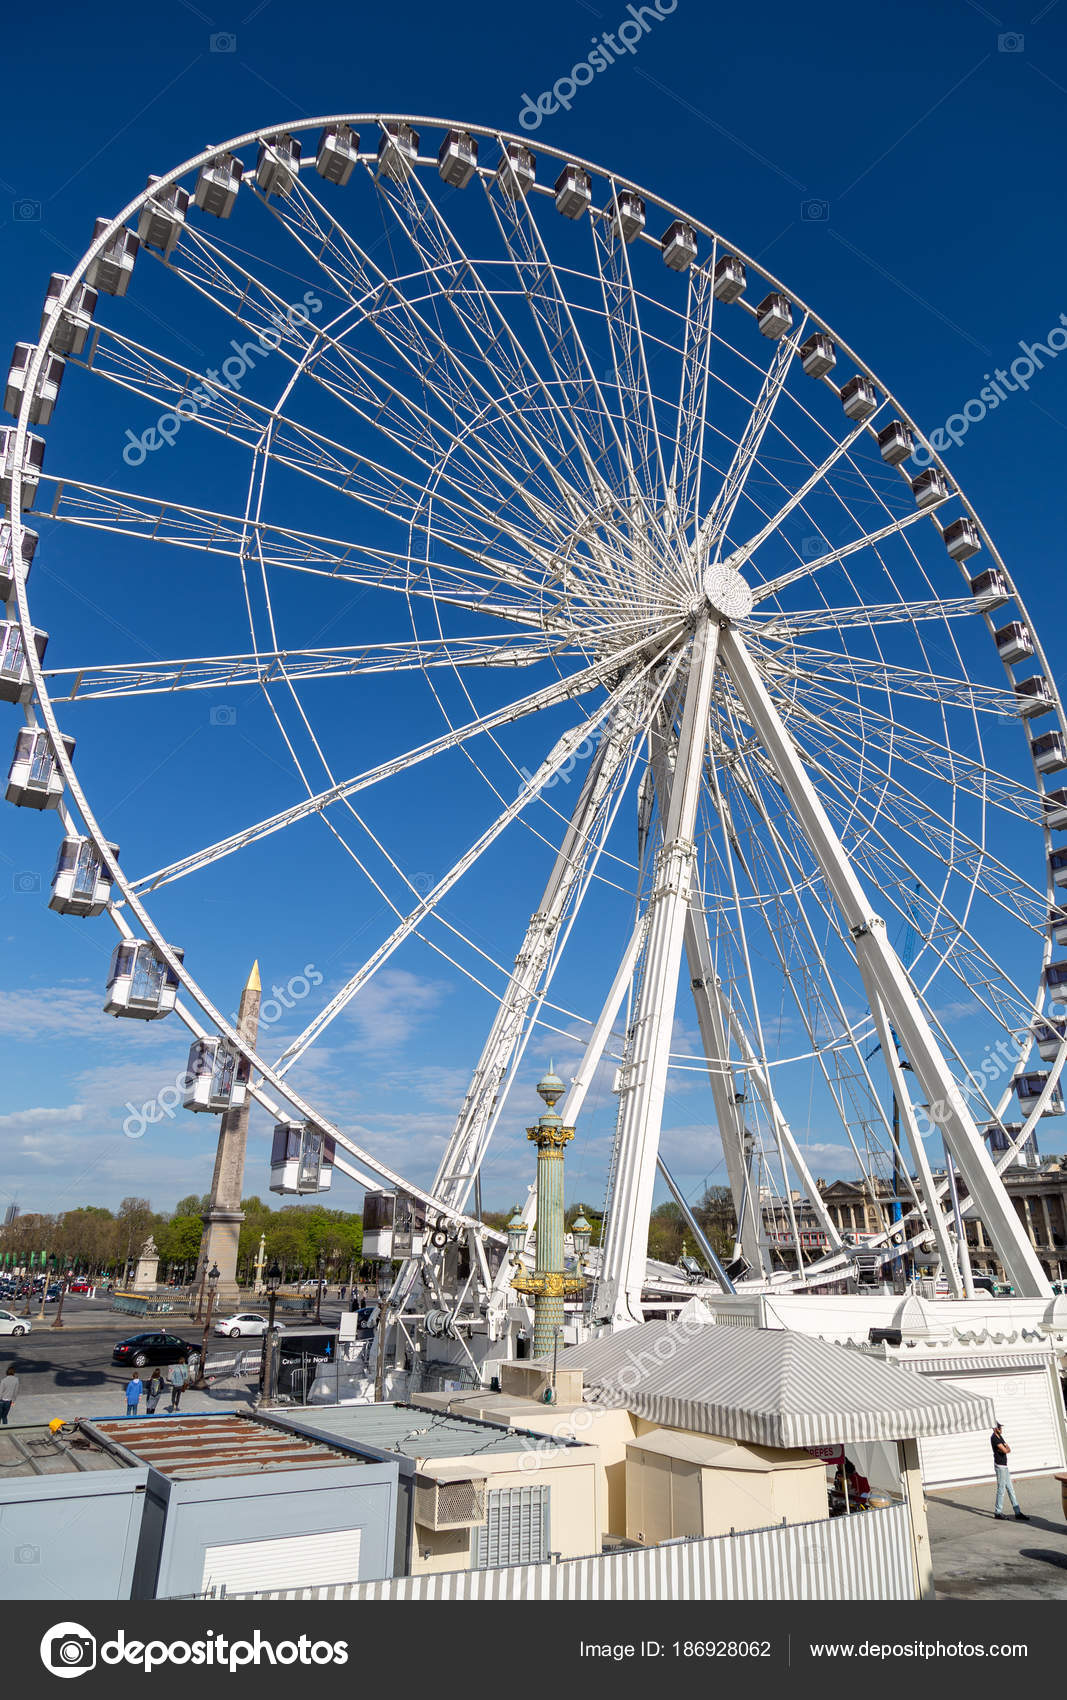 paris france march 27 2017 ferris wheel roue de paris at place de